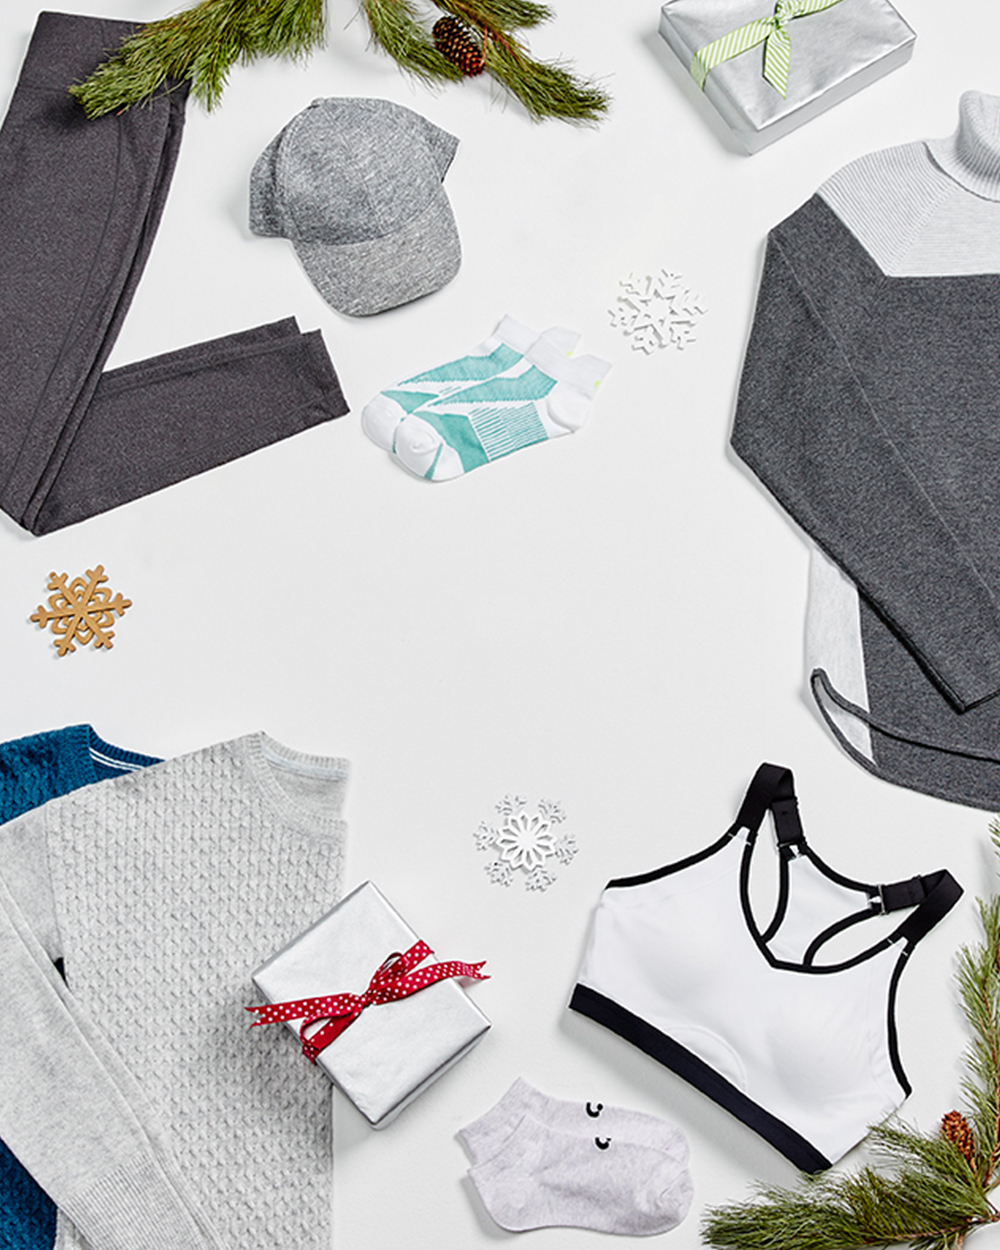 Gifts for the athleisure lover